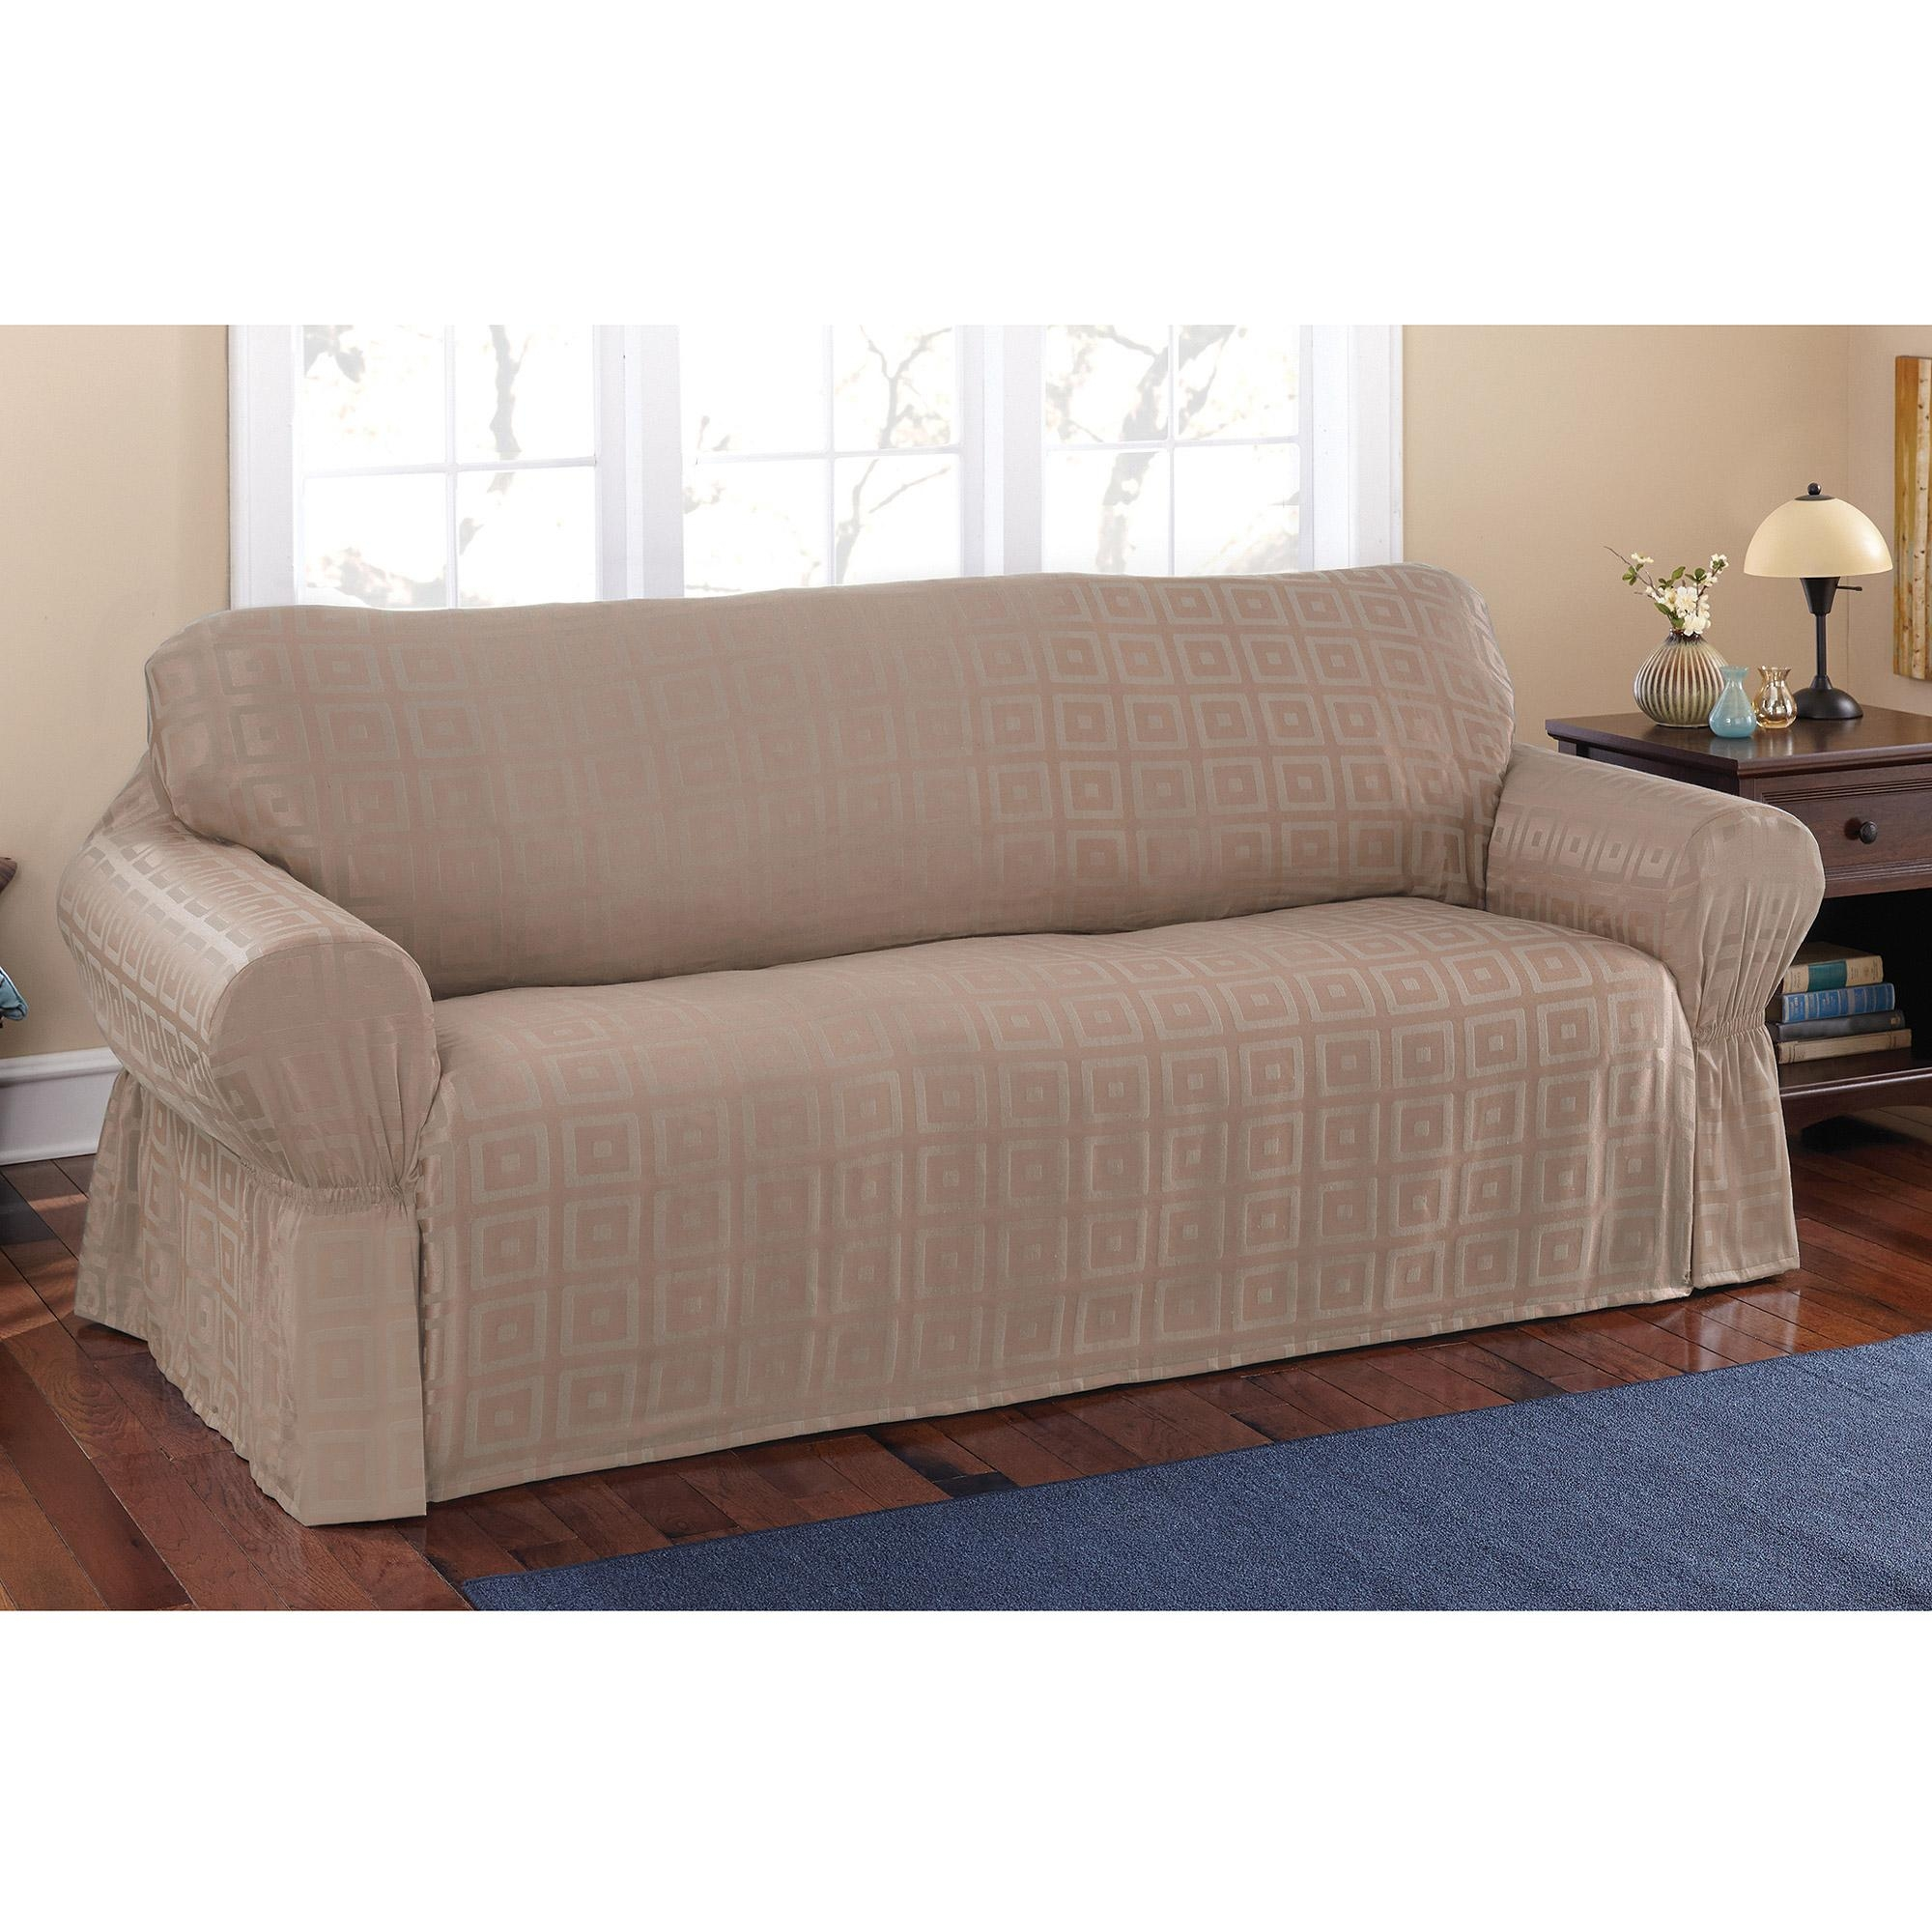 Sofas Center : Armless Sofa Couch Covers Leather Cover Walmart As With Regard To Armless Couch Slipcovers (Image 18 of 20)